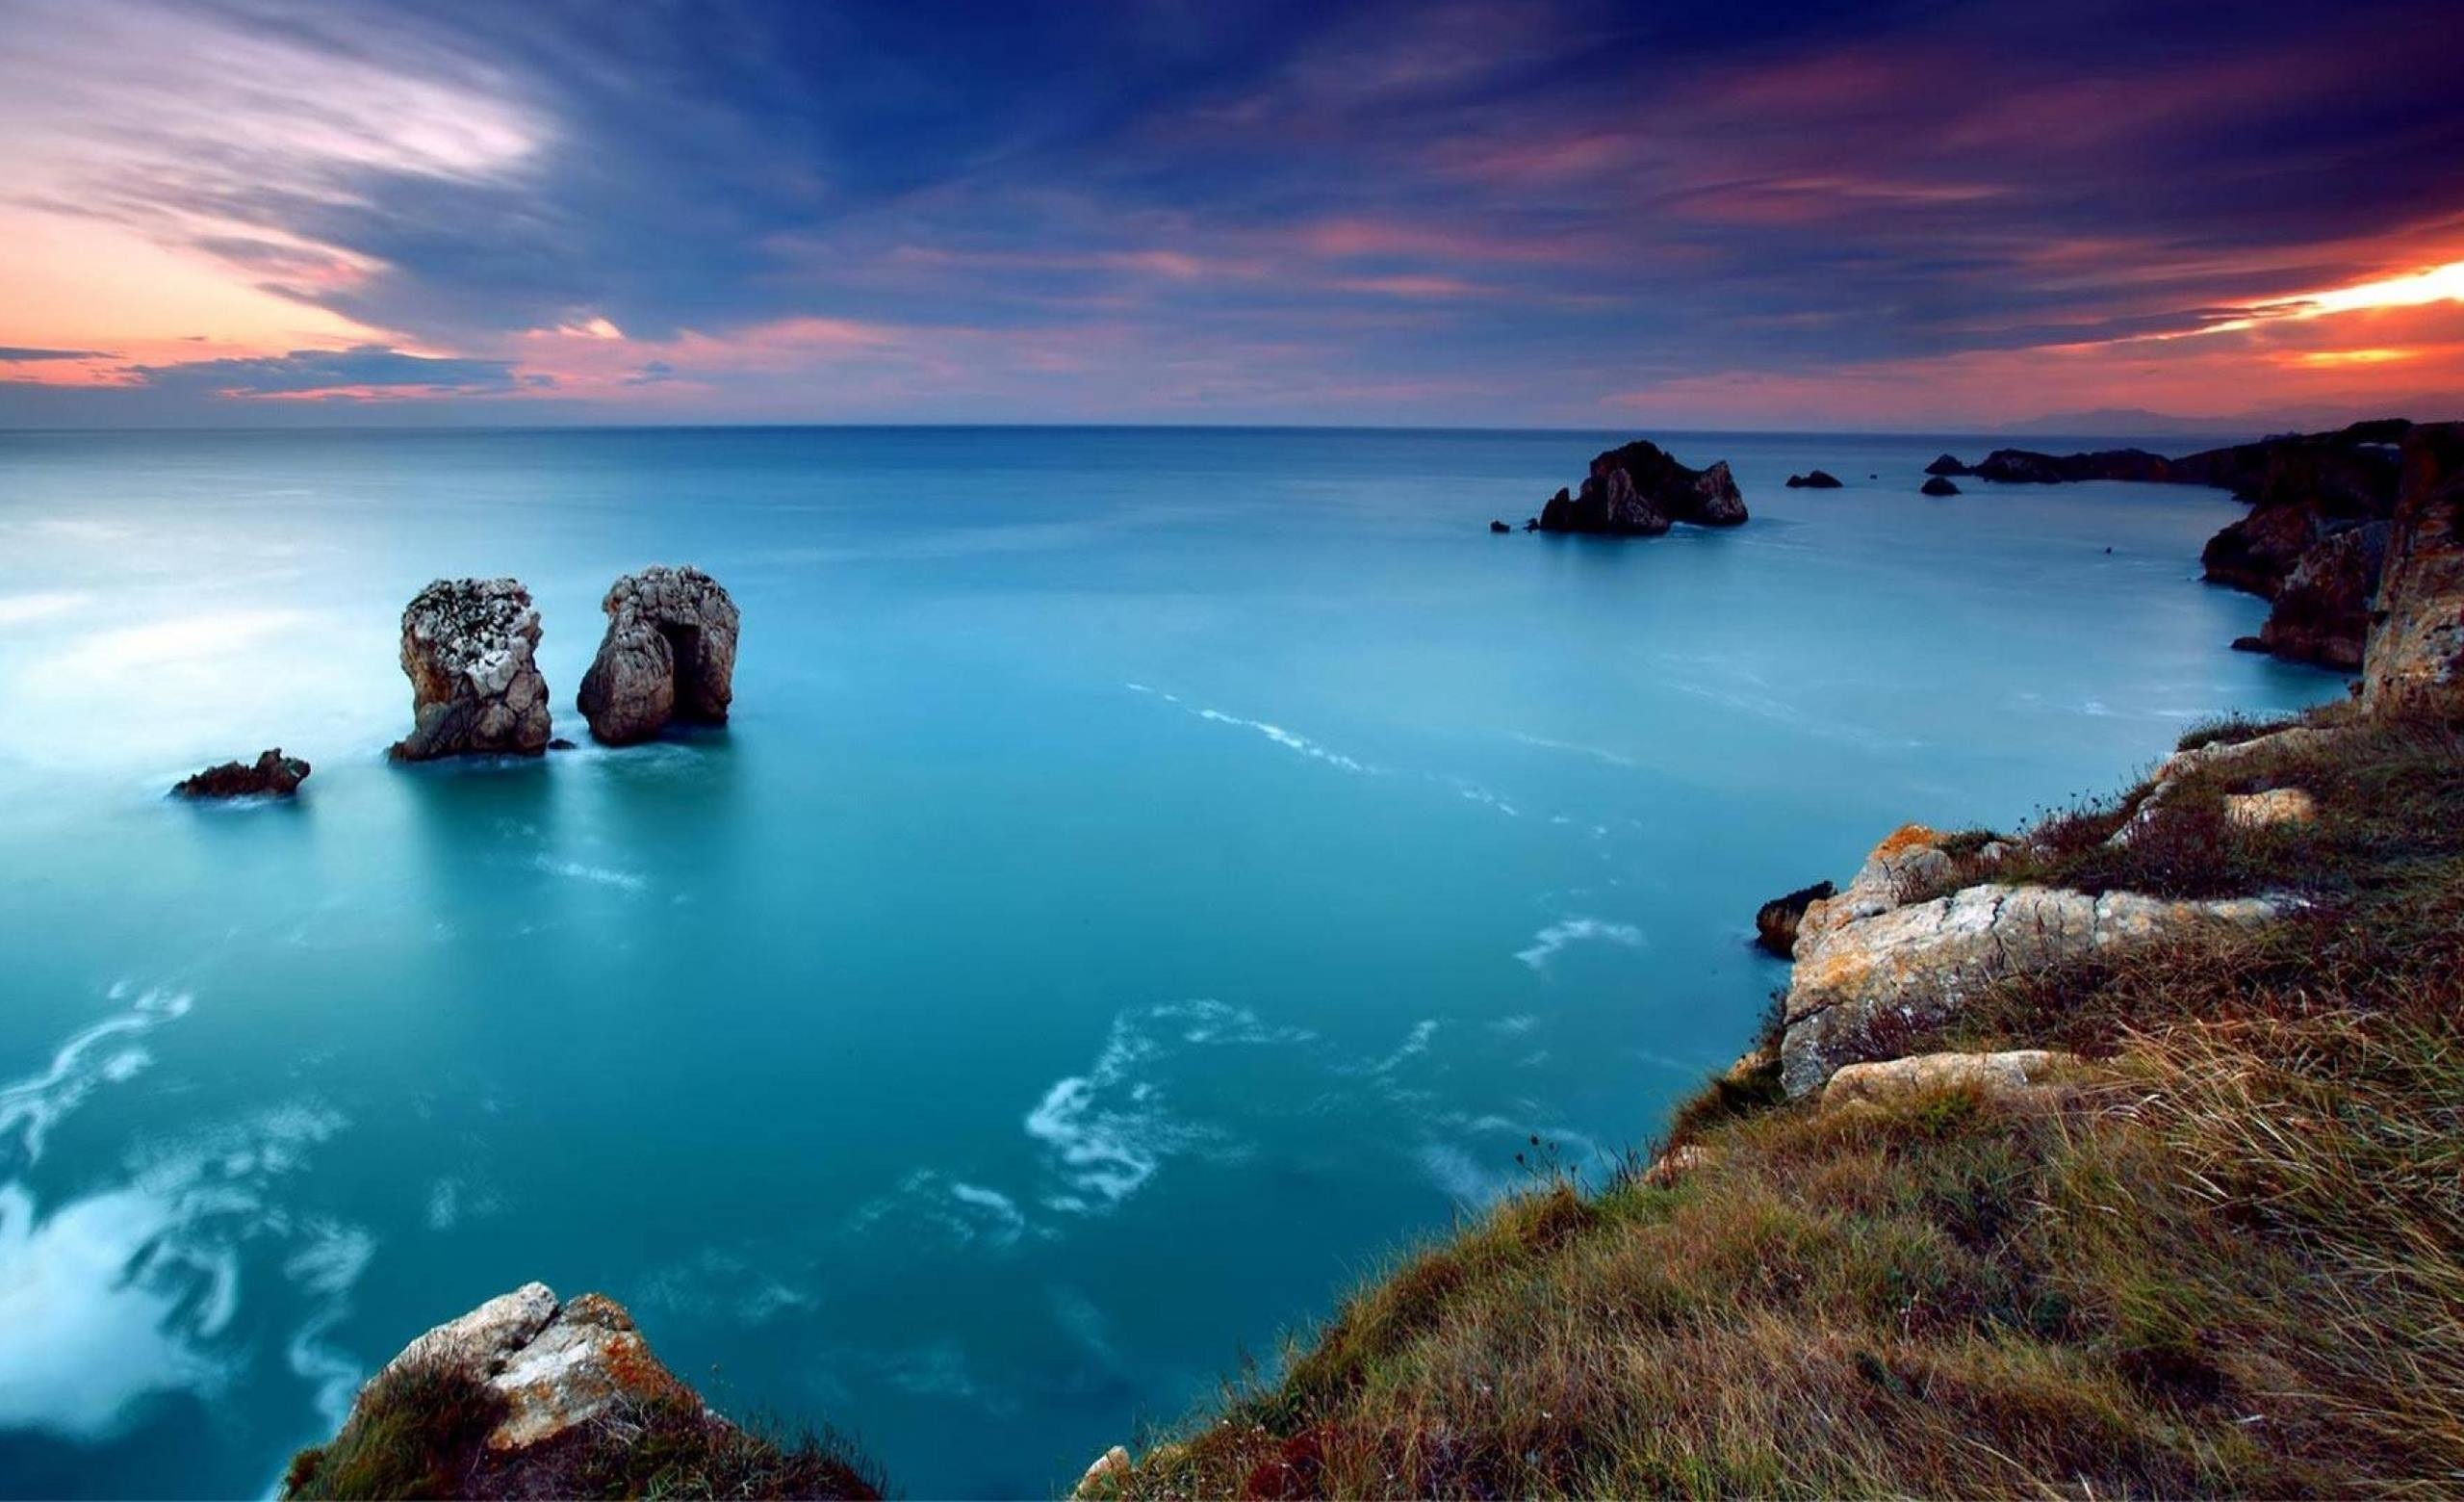 sea view wallpaper,body of water,nature,natural landscape,sea,sky